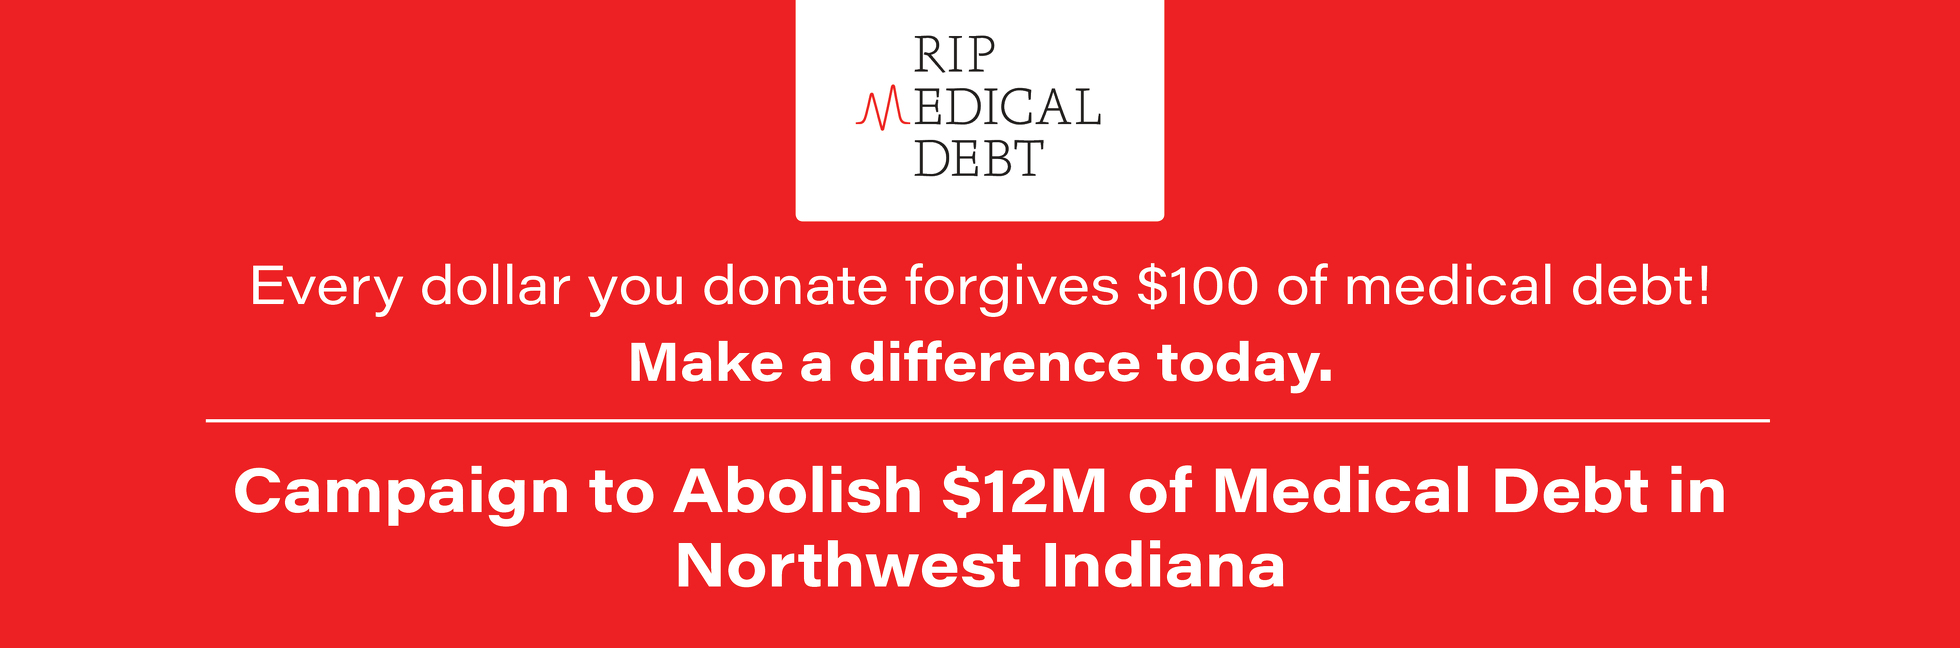 Northwest Indiana Medical Debt Relief Campaign